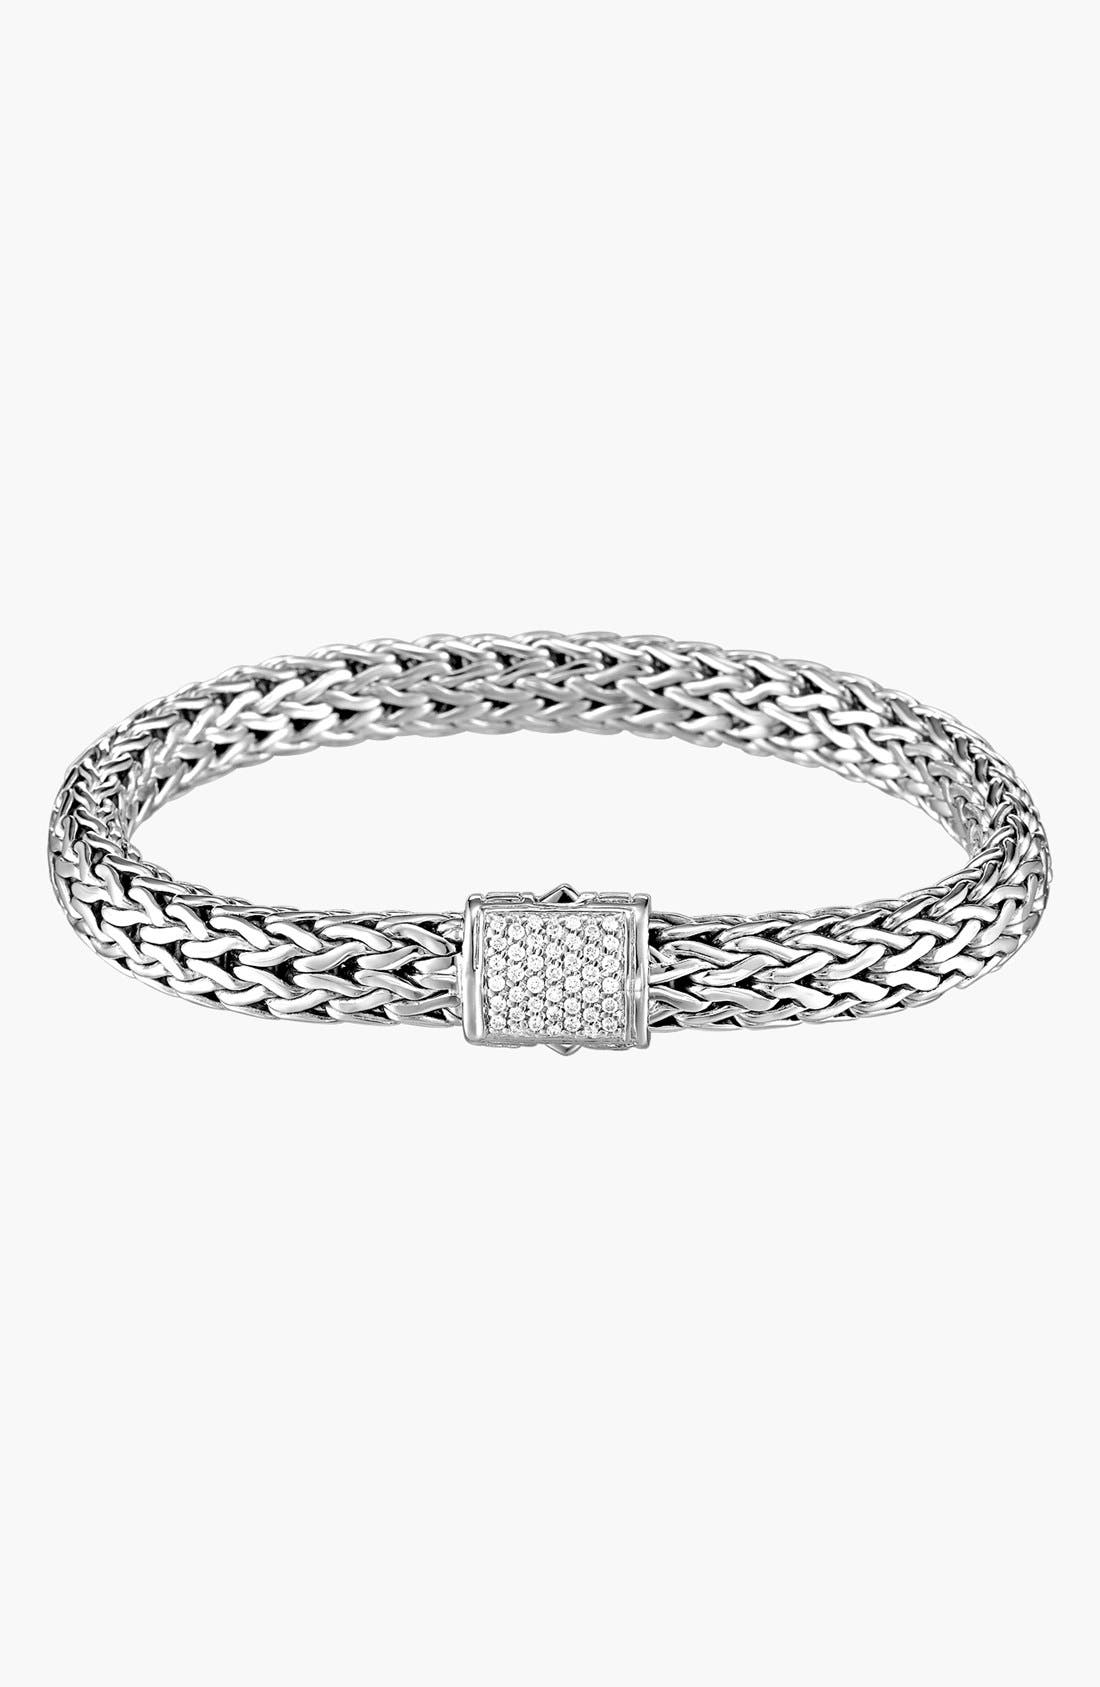 Main Image - John Hardy 'Classic Chain' Medium Pavé Diamond Bracelet